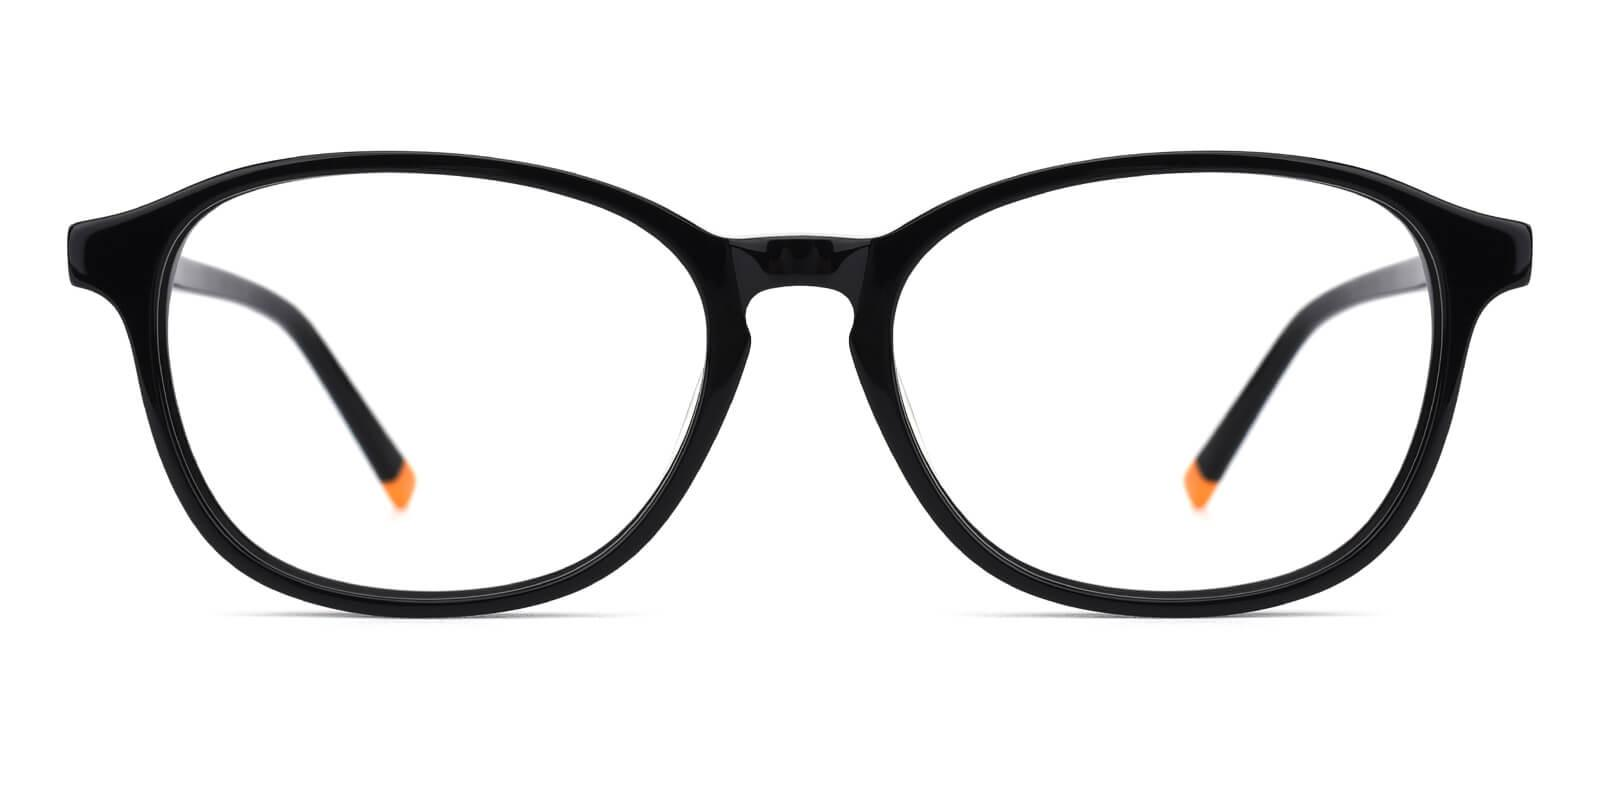 Lisbon-Black-Square-Acetate-Eyeglasses-additional2